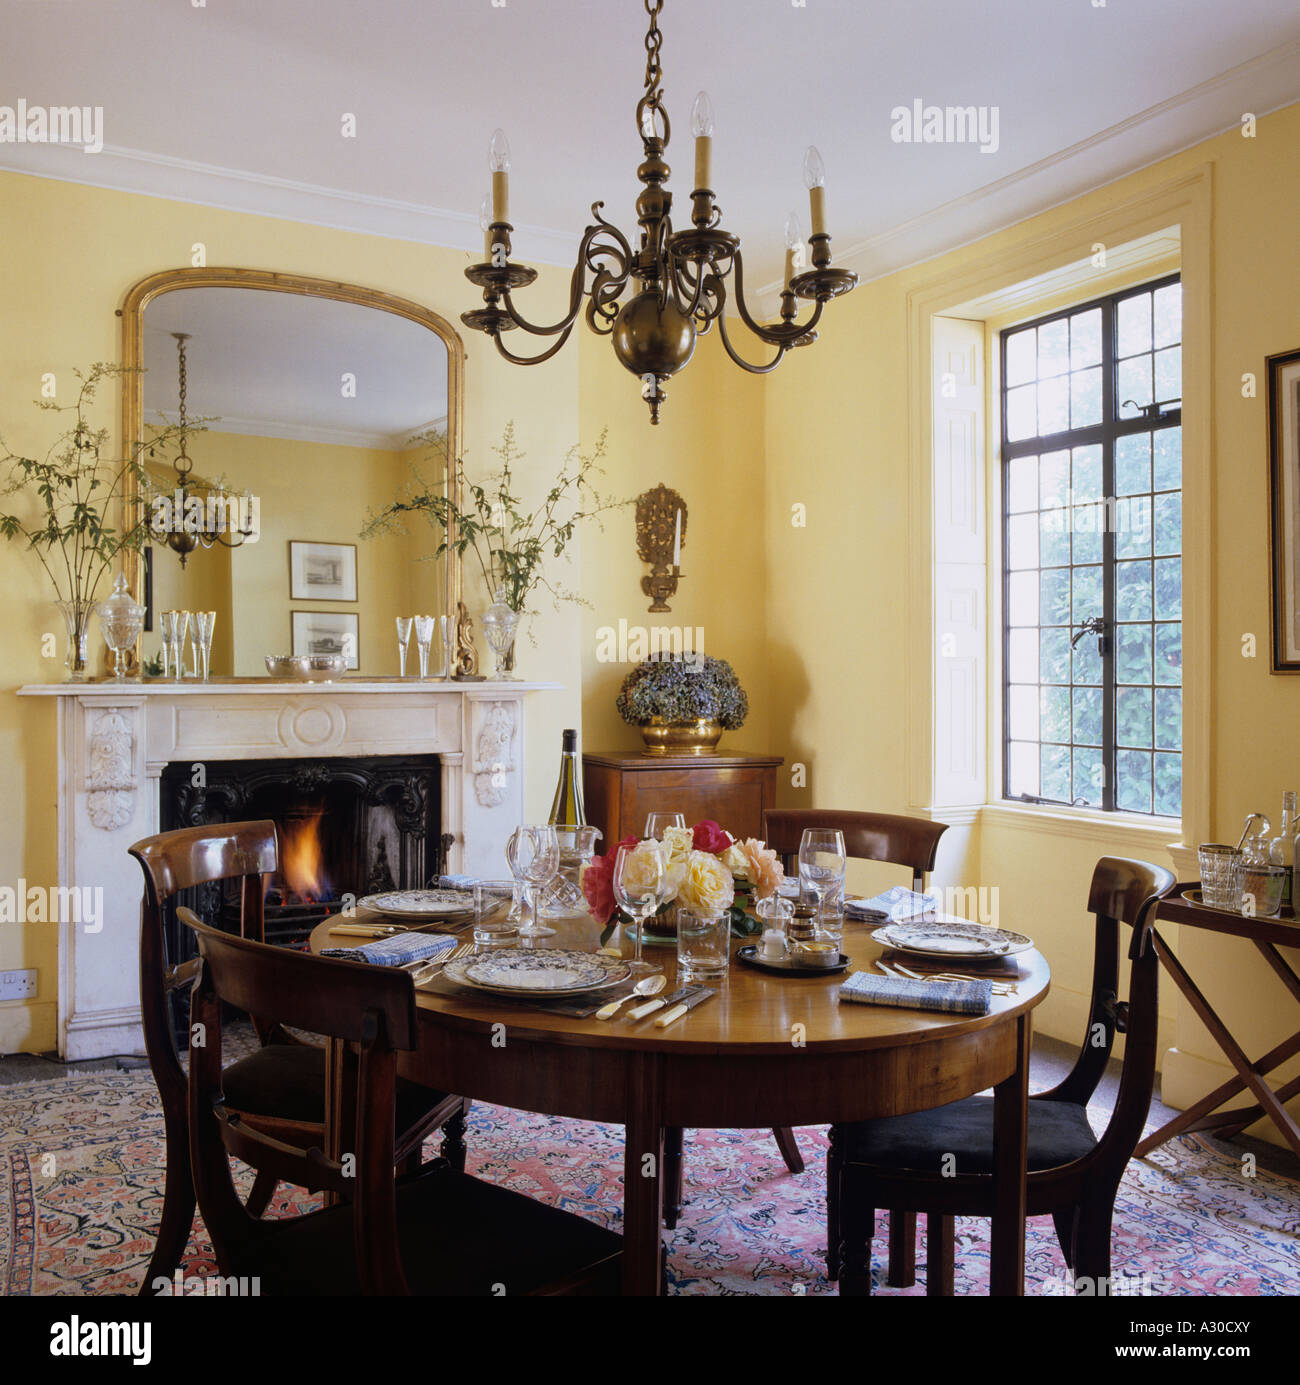 Dining room in English townhouse with country style interior - Stock Image